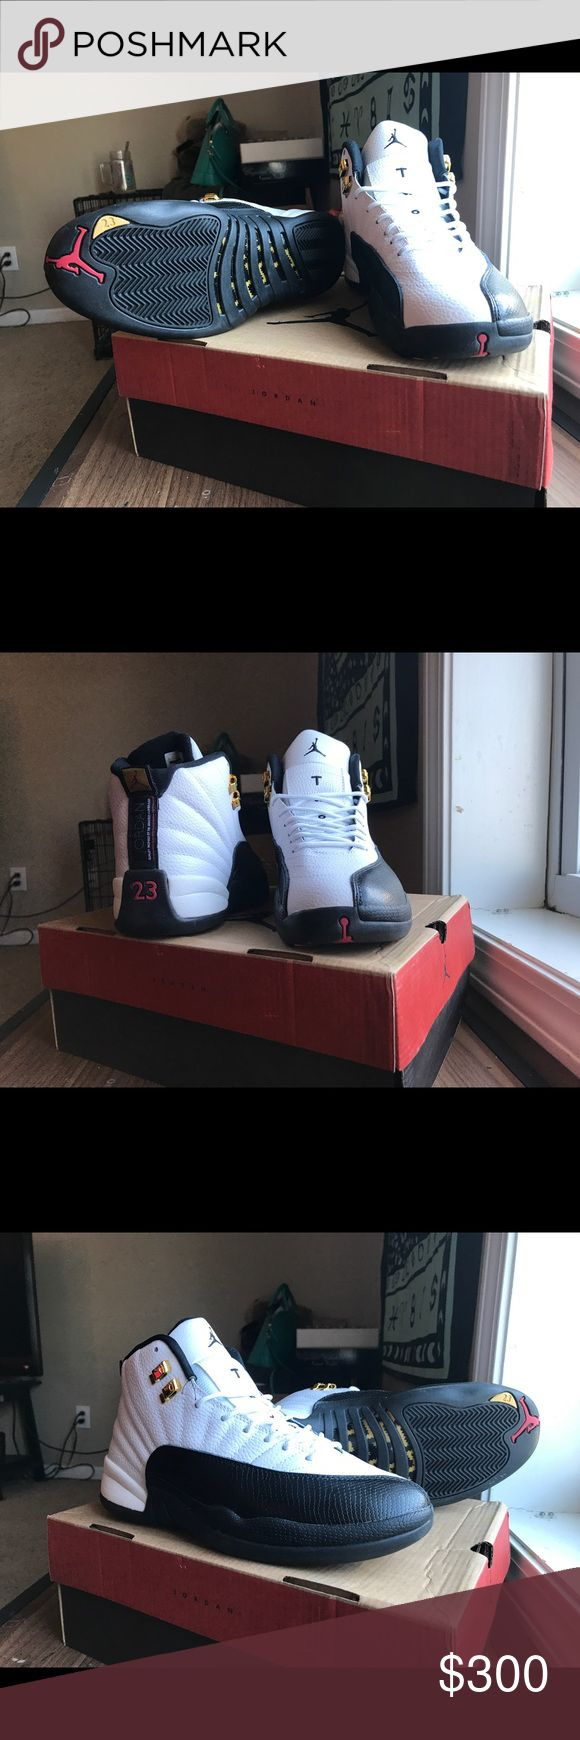 Air Jordan retro 12 taxi OG all men's Men's size 9.5 OG all never worn perfect condition hard to find make me an offer Air Jordan Shoes Athletic Shoes